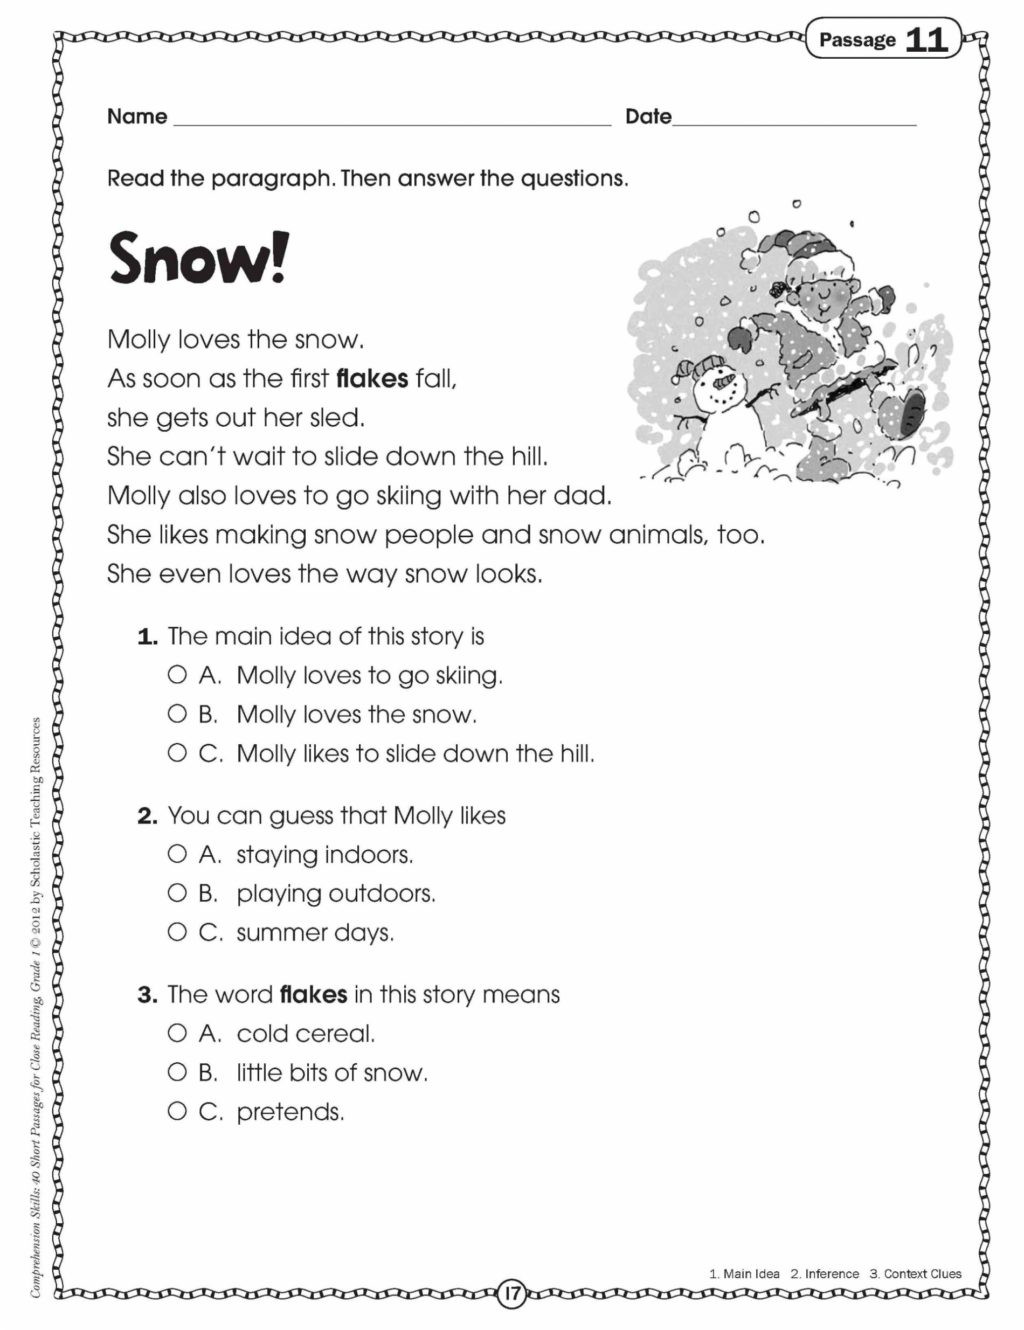 Spelling Worksheets 3rd Grade Worksheet 4the Spelling Words Reading Passages with